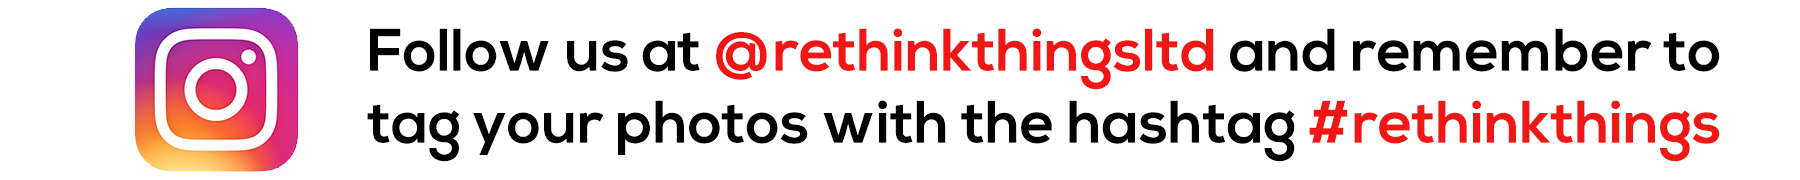 Follow us at @rethinkthingsltd and remember to tag your photos taken with the hashtag #rethinkthings